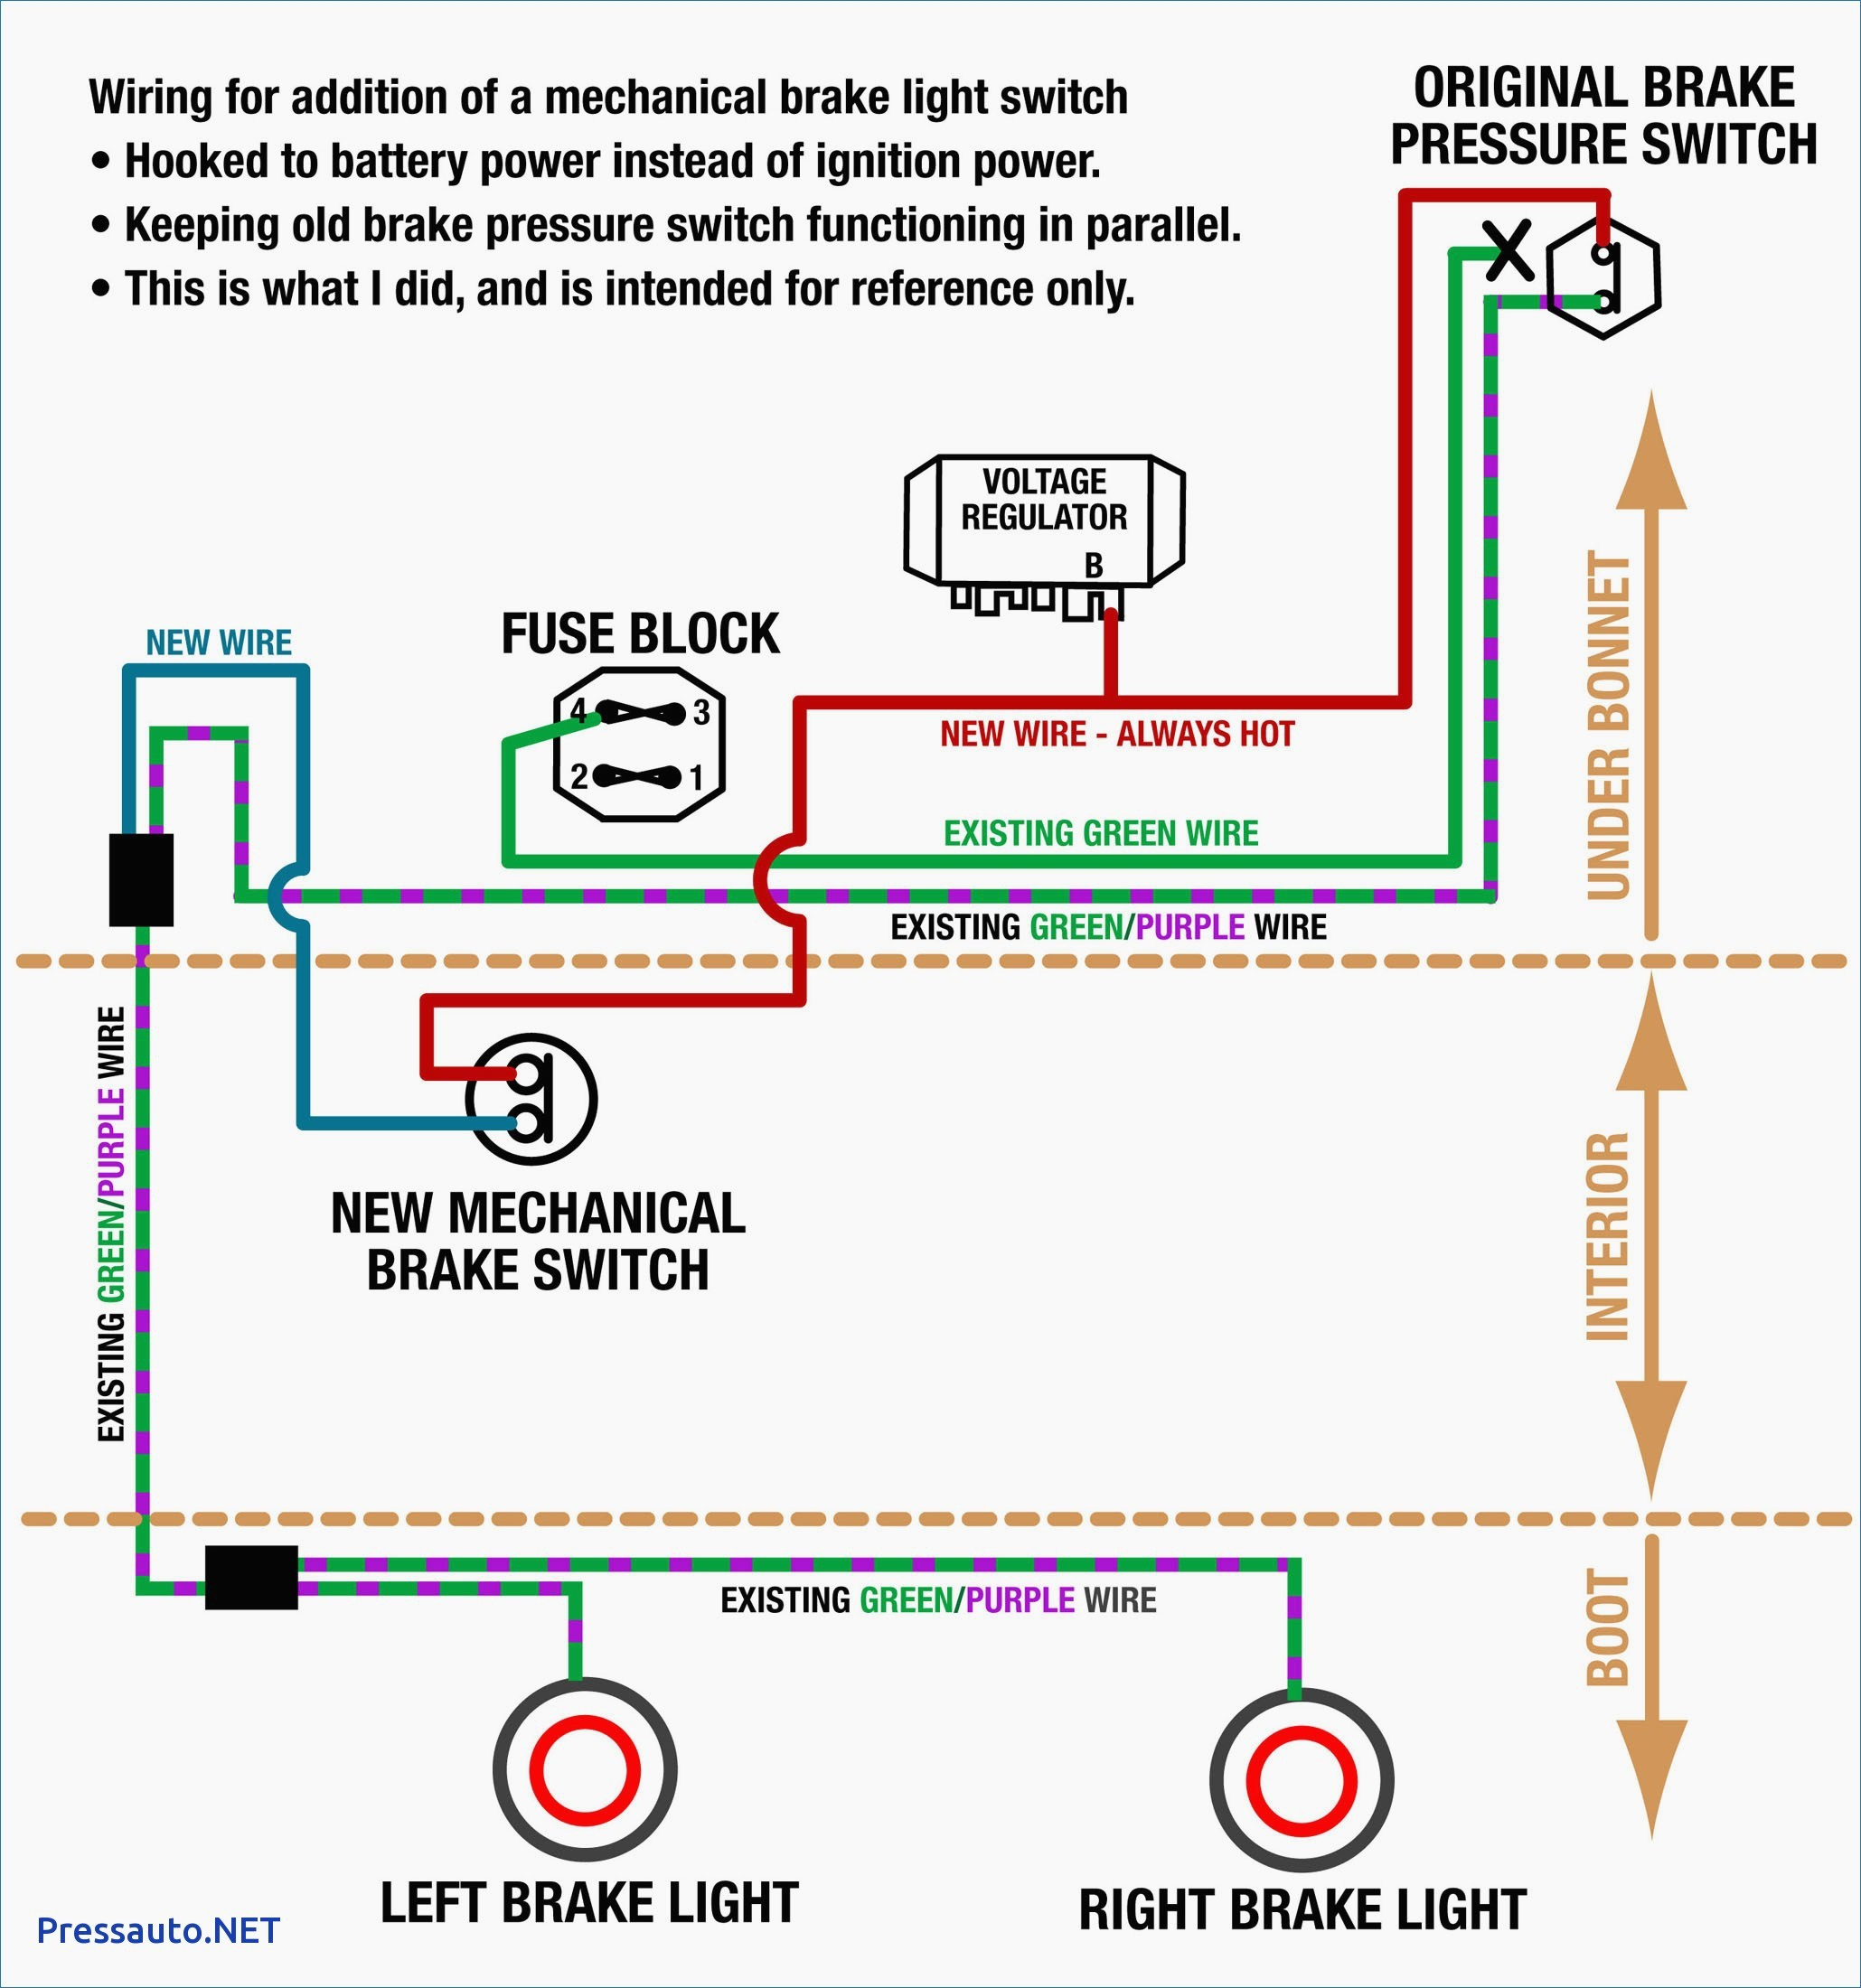 Brake Light Switch Wiring Diagram New Inspiration 4 Way Light Switch Wiring  Diagram Irelandnews